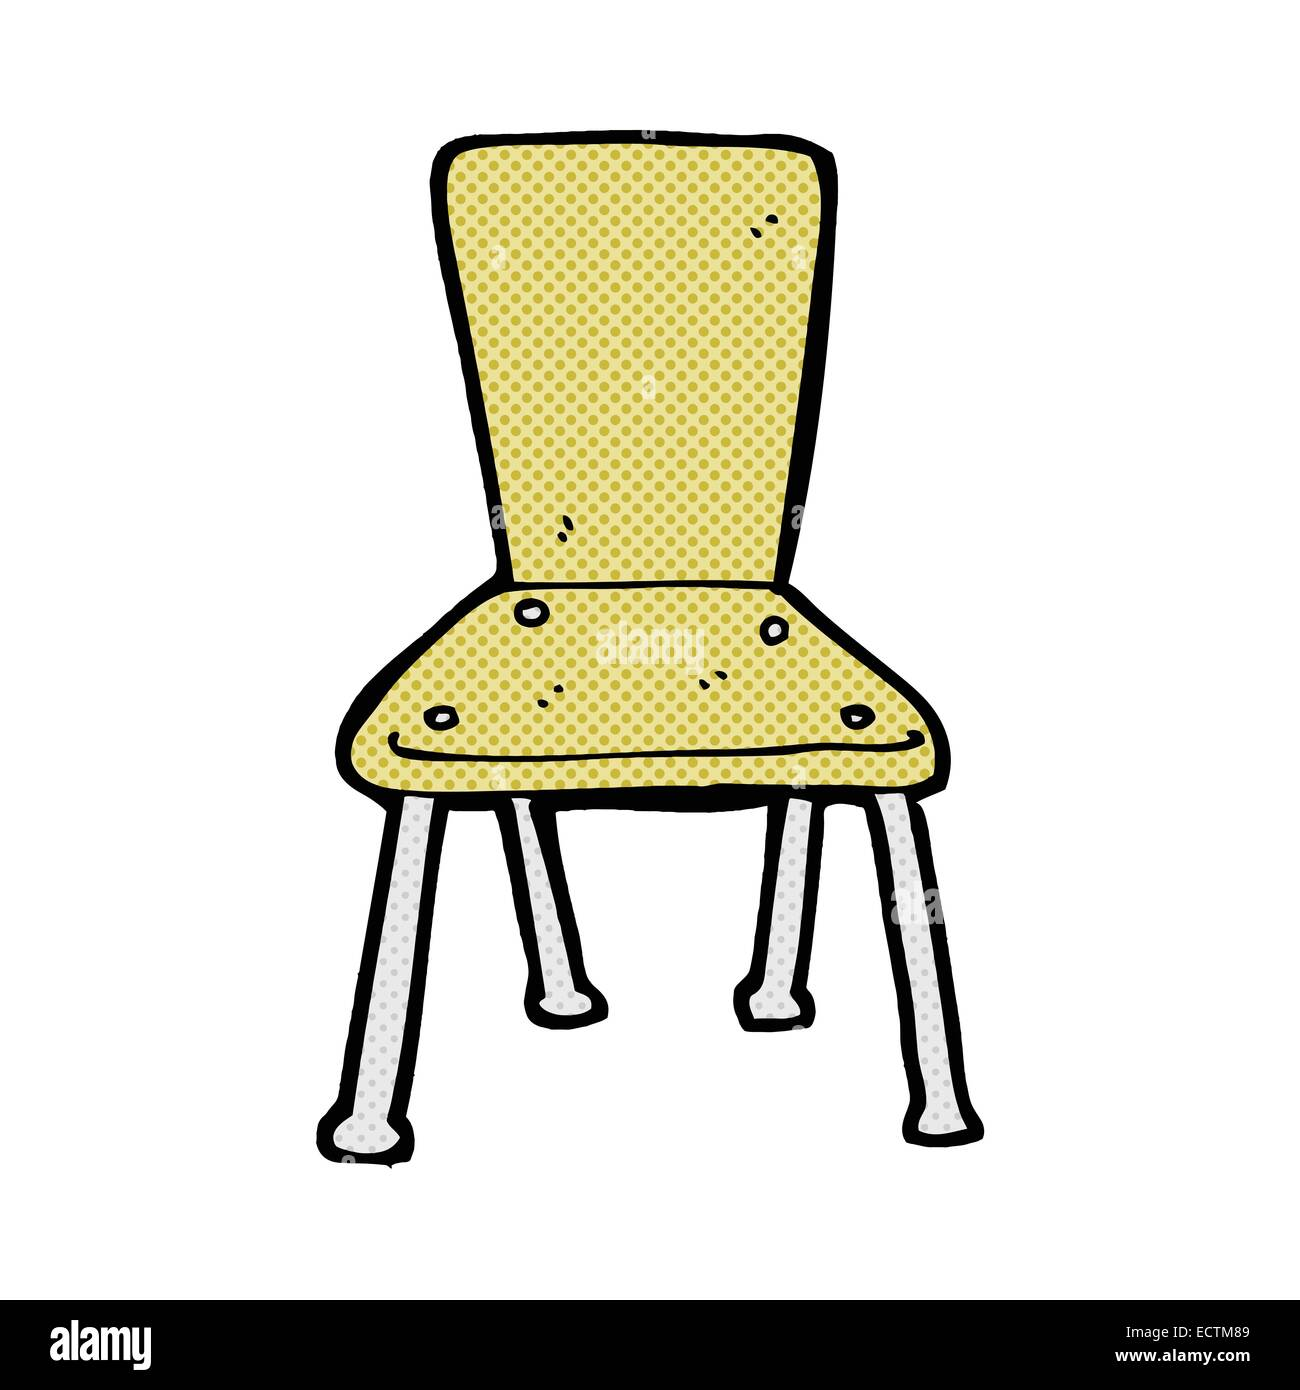 Marvelous Cartoon Old School Chair Cut Out Stock Images Pictures Alamy Download Free Architecture Designs Scobabritishbridgeorg